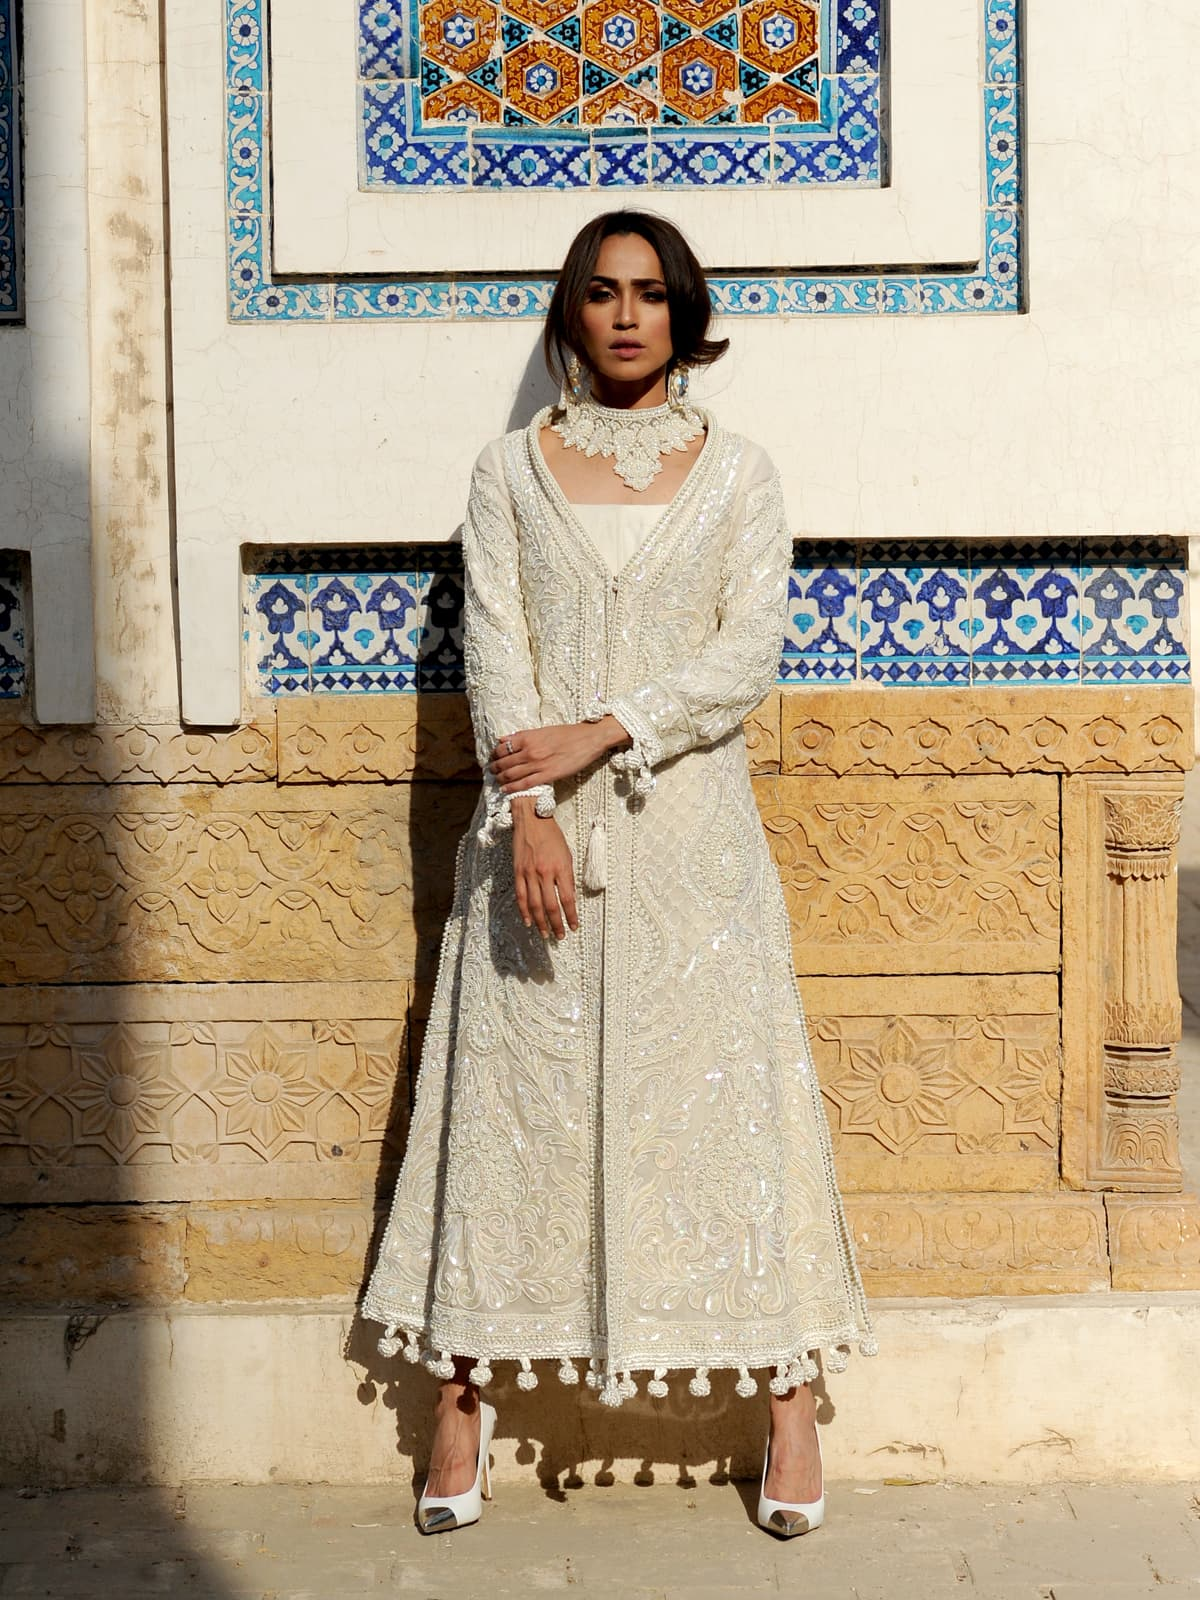 Classically Pakistani and yet universal in its beauty; thread embroideries, pearls and sequins shimmer on a design that is reflective of Rizwan Beyg's creative brilliance – and of the exquisite indigenous craft found within Pakistan.